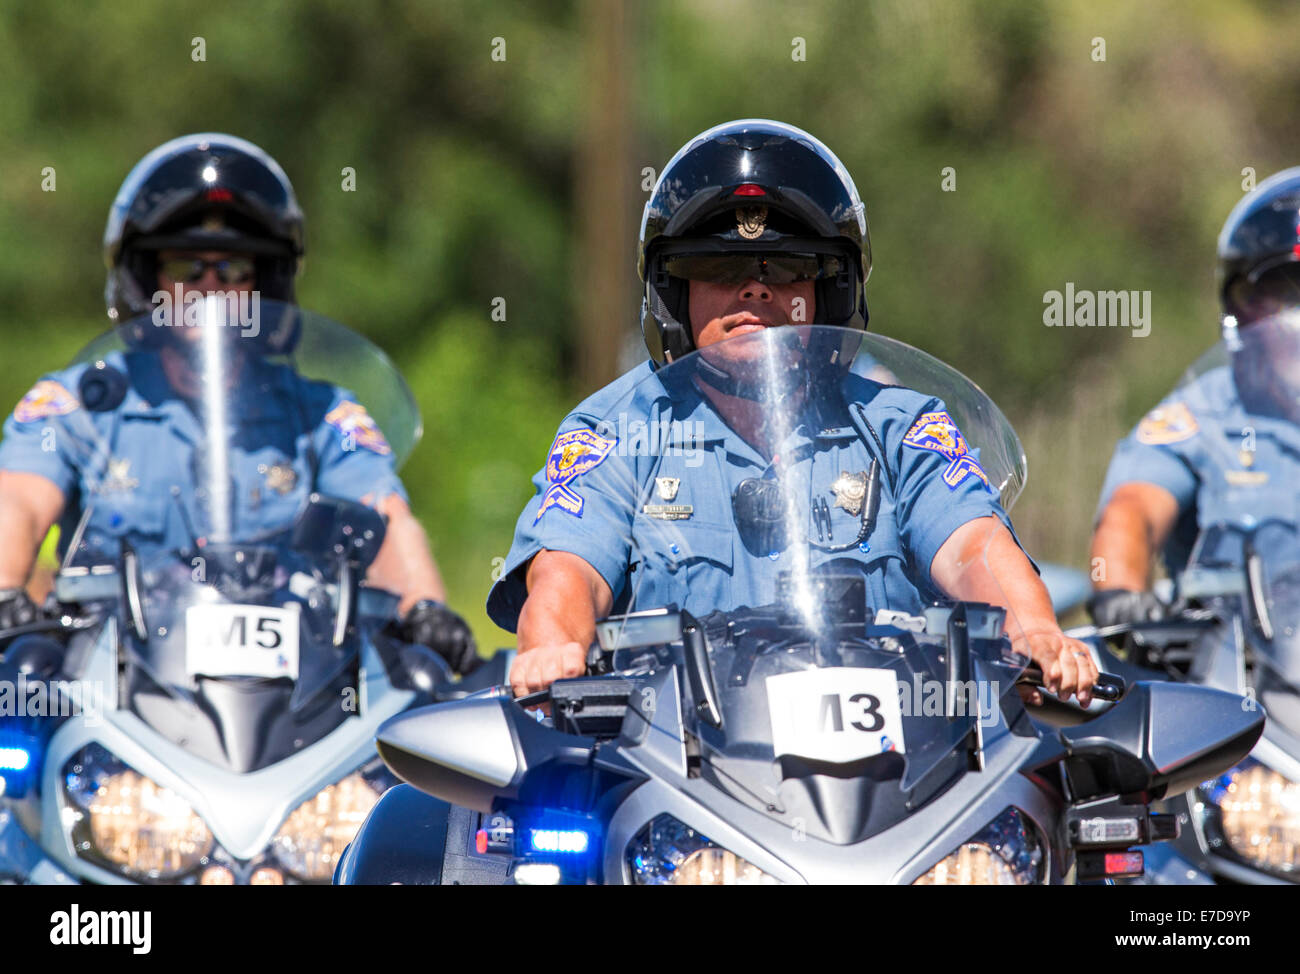 Colorado State Police motorcycles, USA Pro Challenge bike race, Stage 3, central Colorado, USA - Stock Image